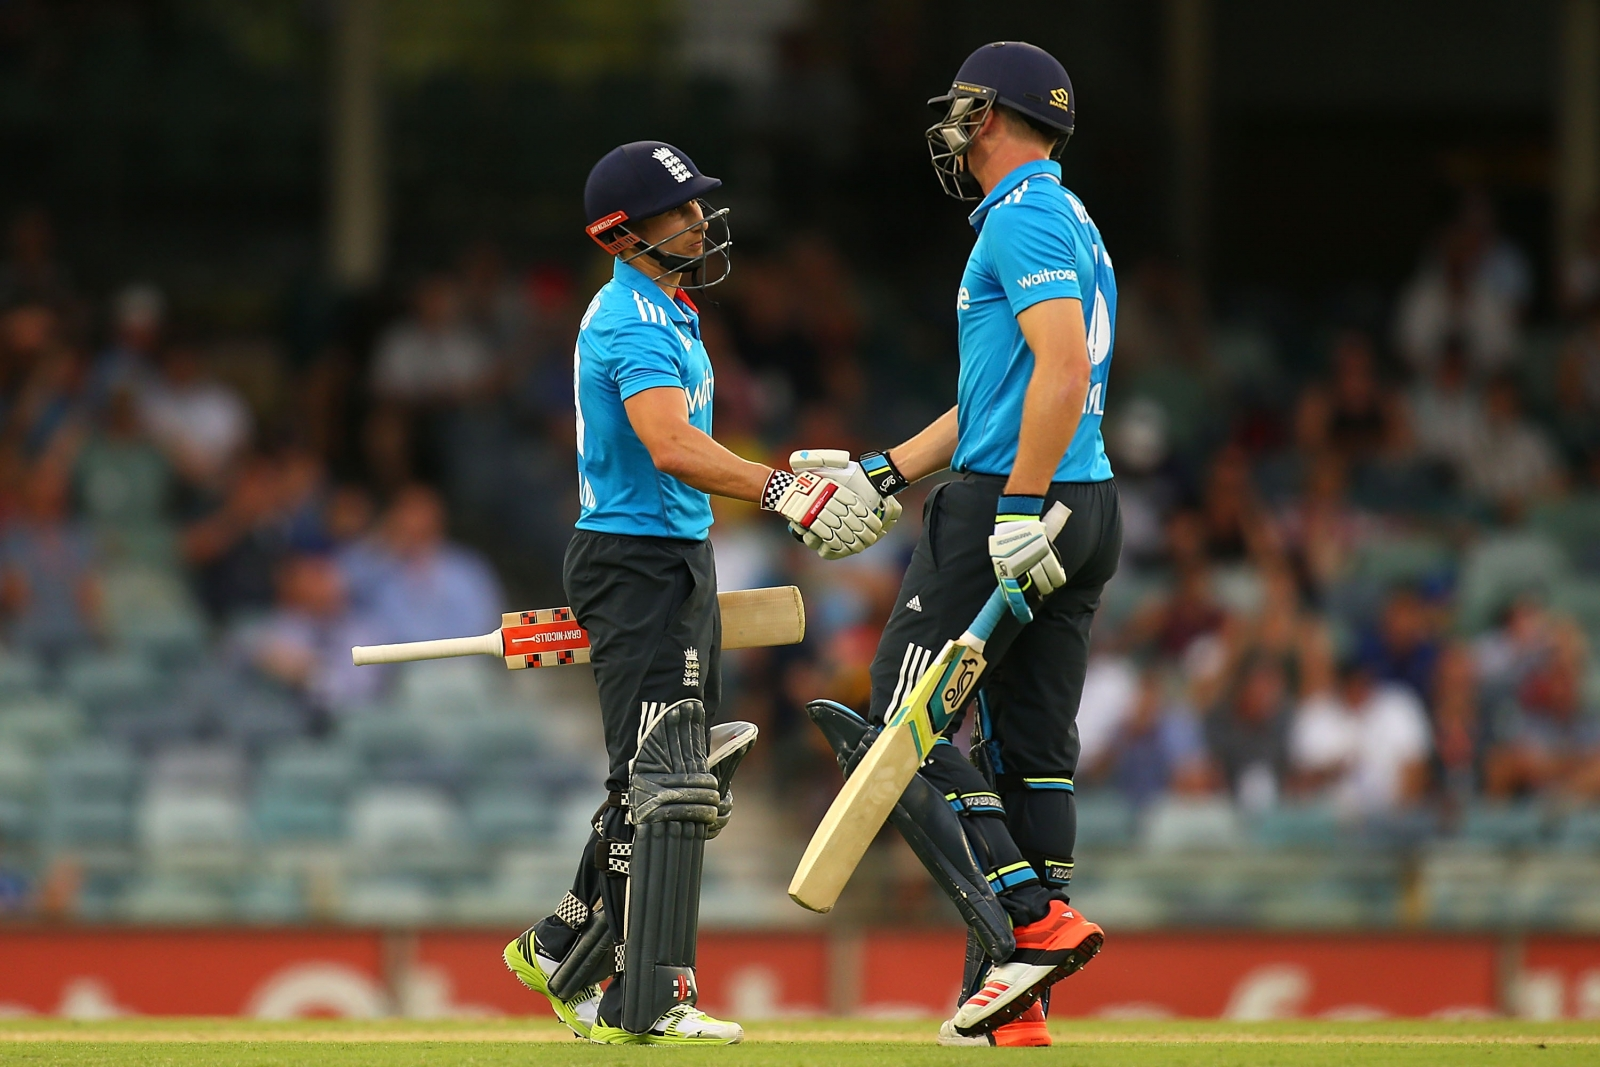 James Taylor and Jos Buttler